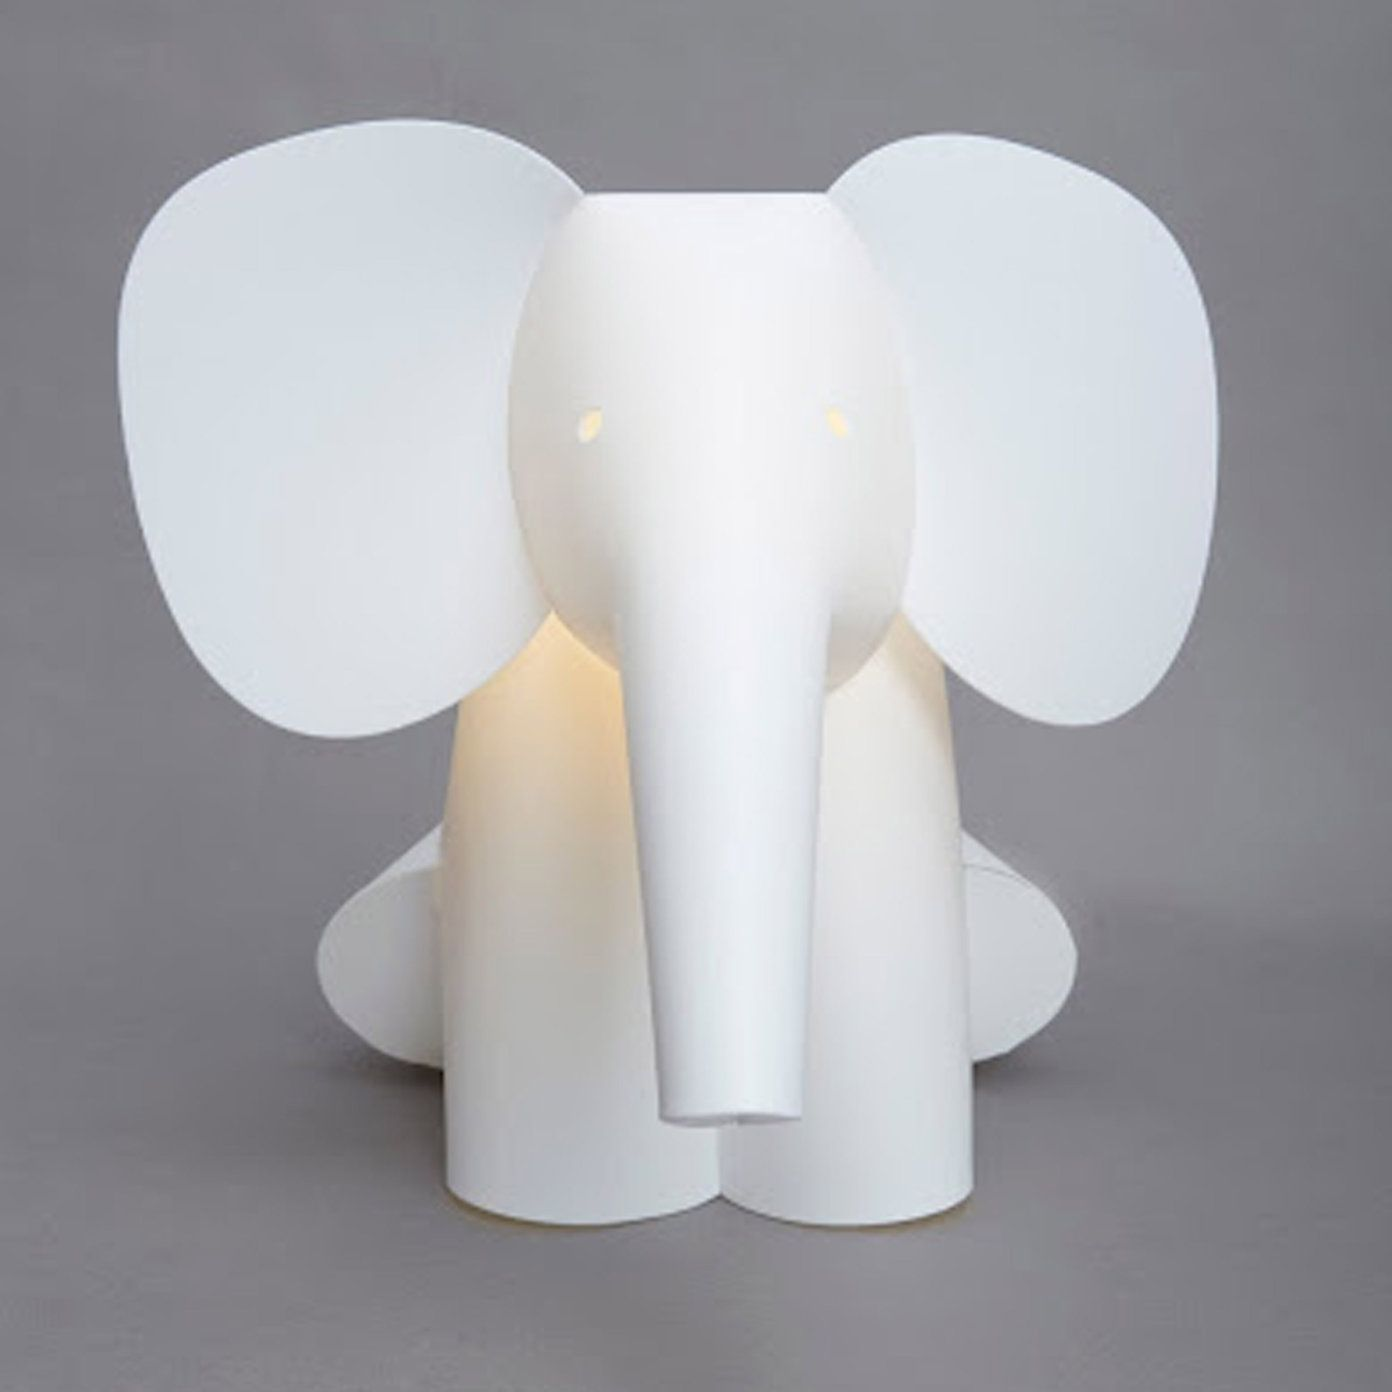 Buy Childrens Bedroom Nursery Elephant Light From The White - Childrens lights for bedrooms